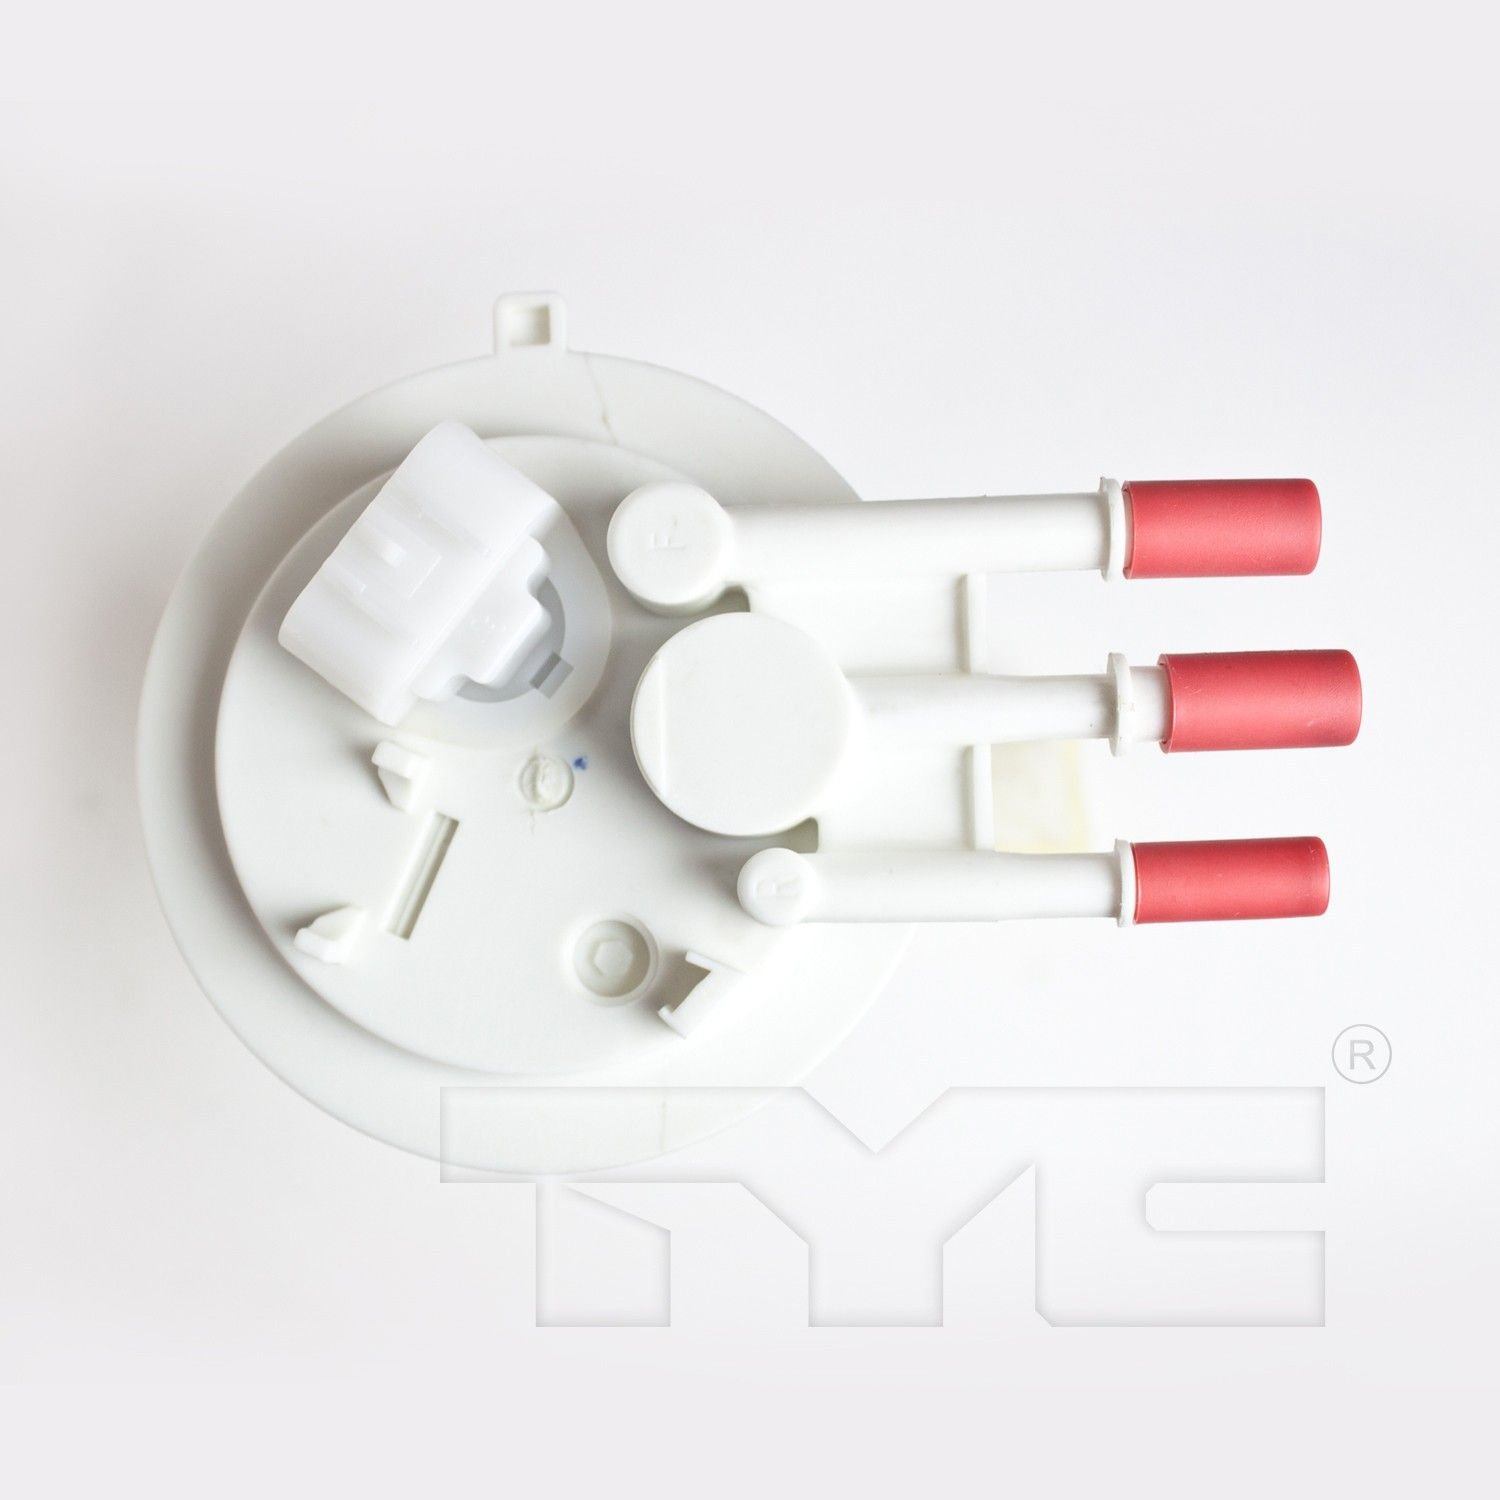 Gmc Yukon Xl 2500 Fuel Pump Module Assembly Replacement Acdelco 2000 Tank N A 8 Cyl 60l Tyc Products 150274 Front